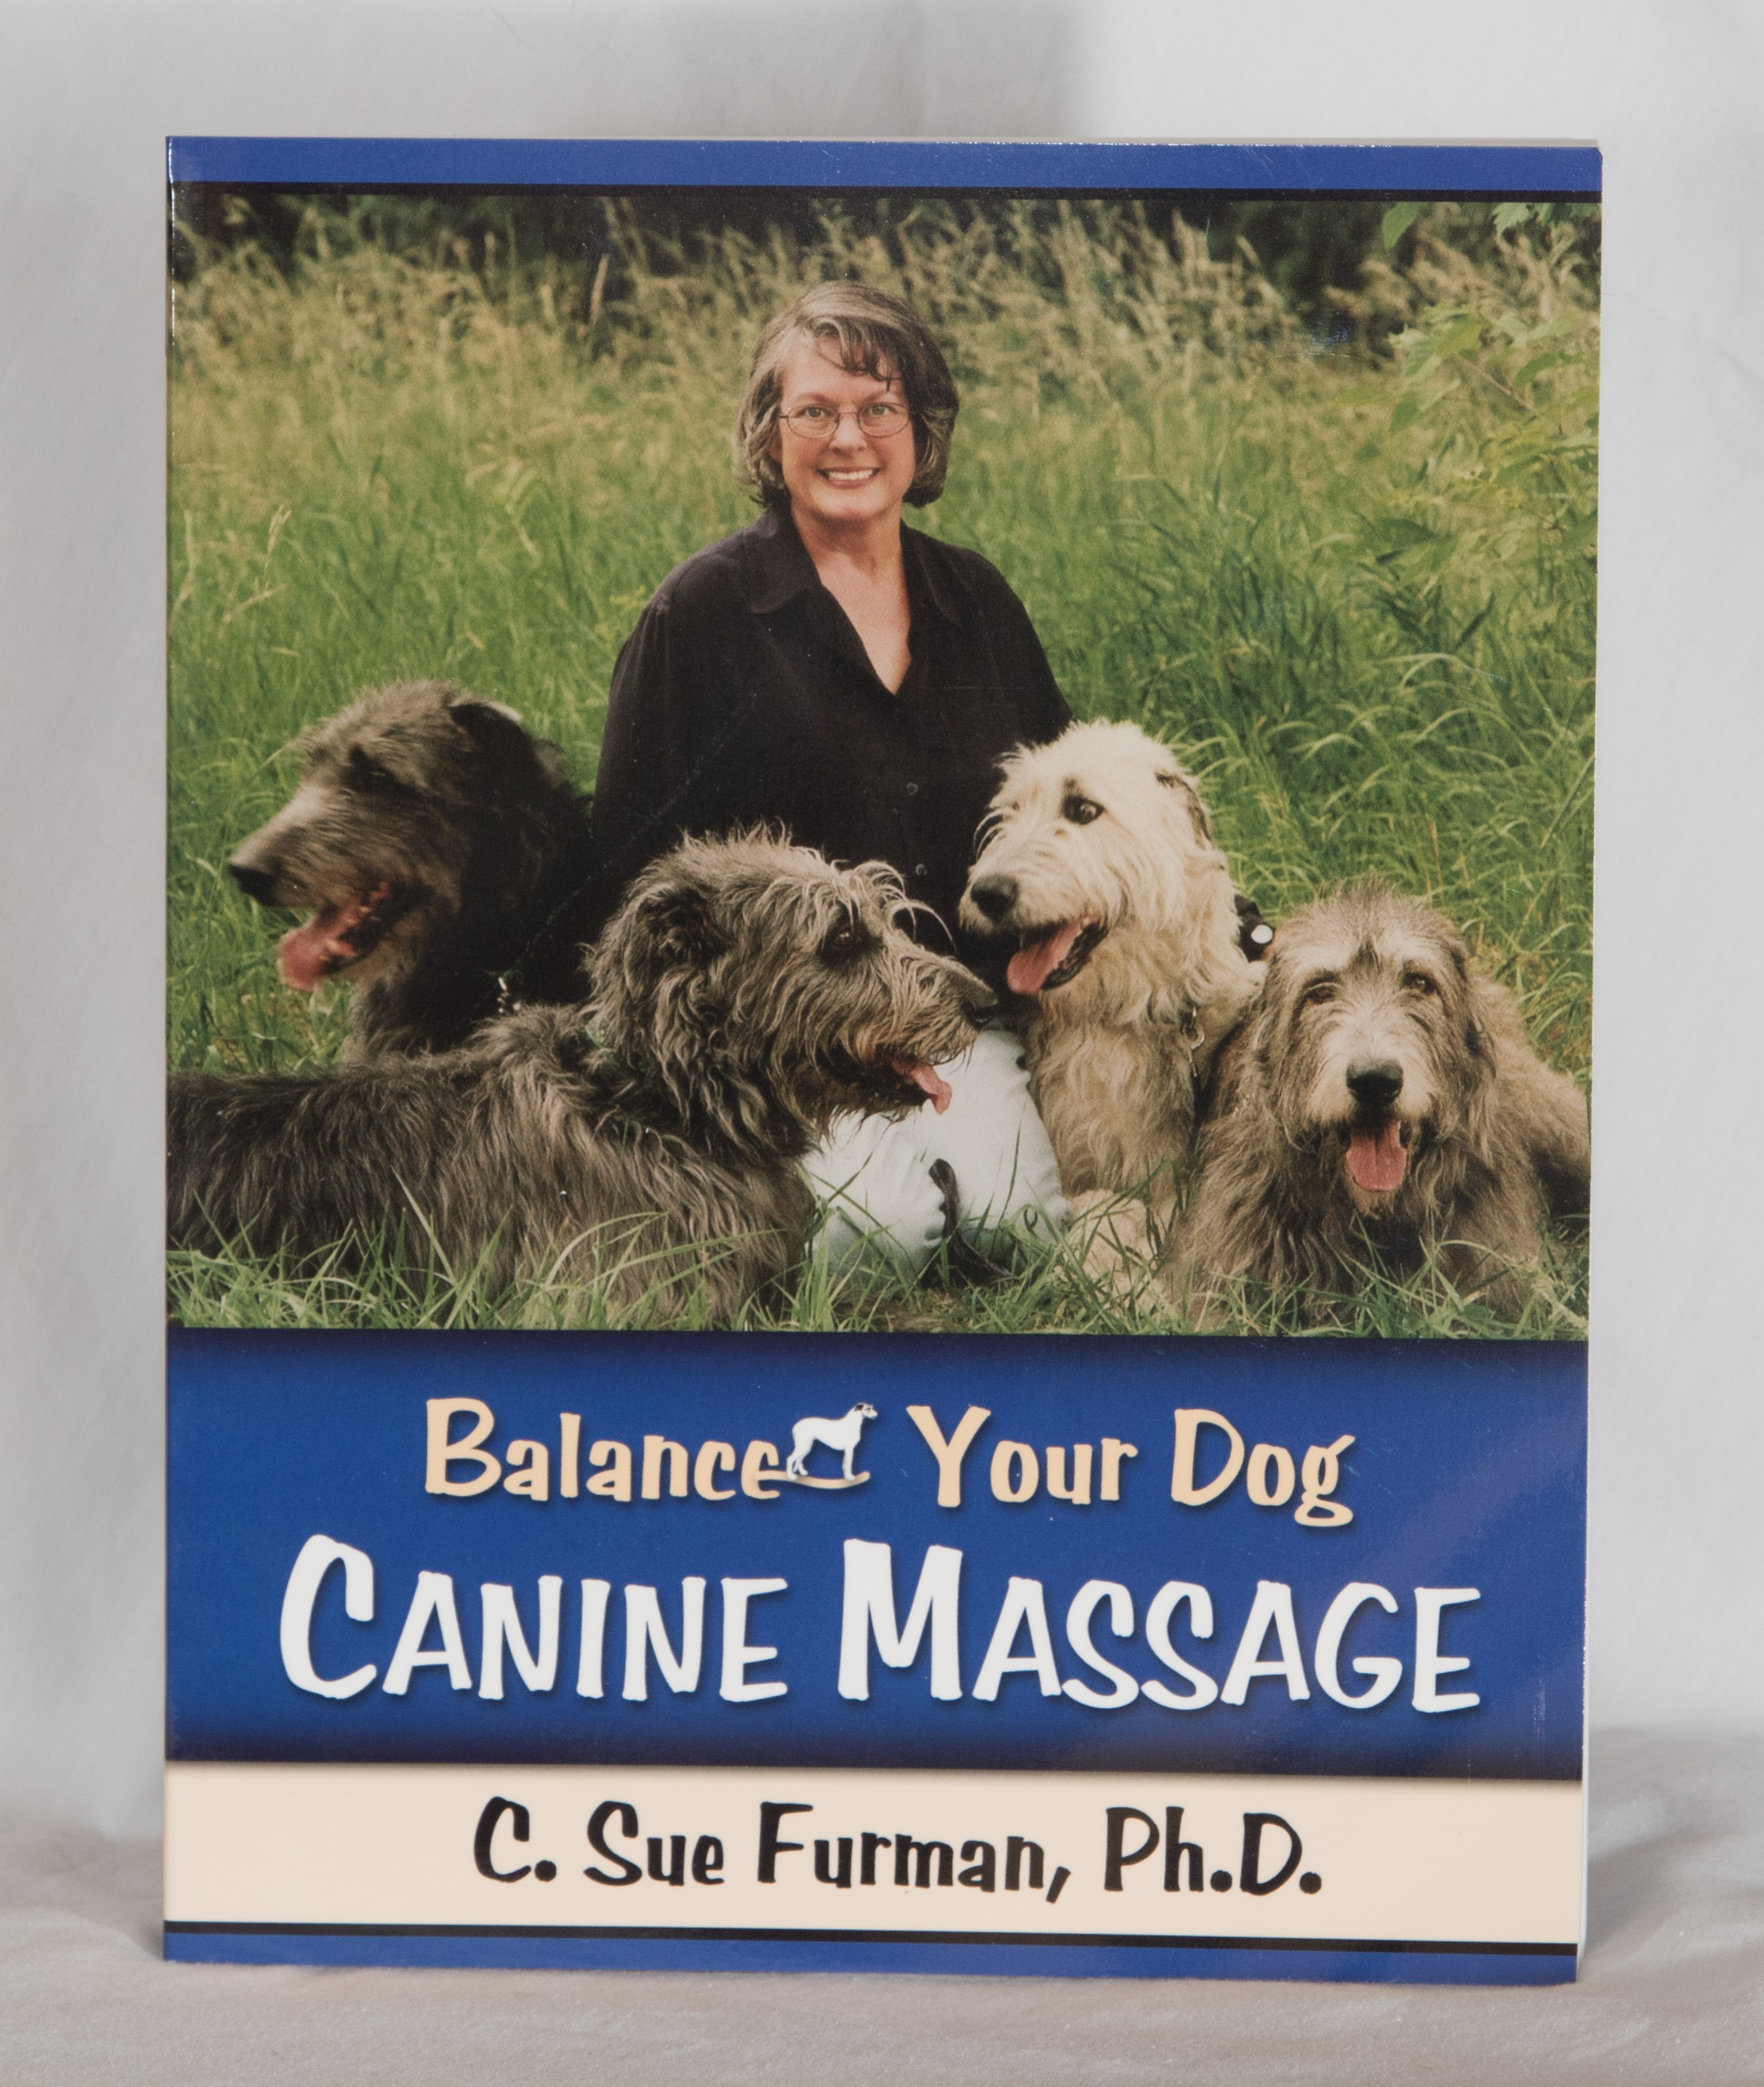 Balance Your Dog Canine Massage | Rocky Mountain School of Animal ...